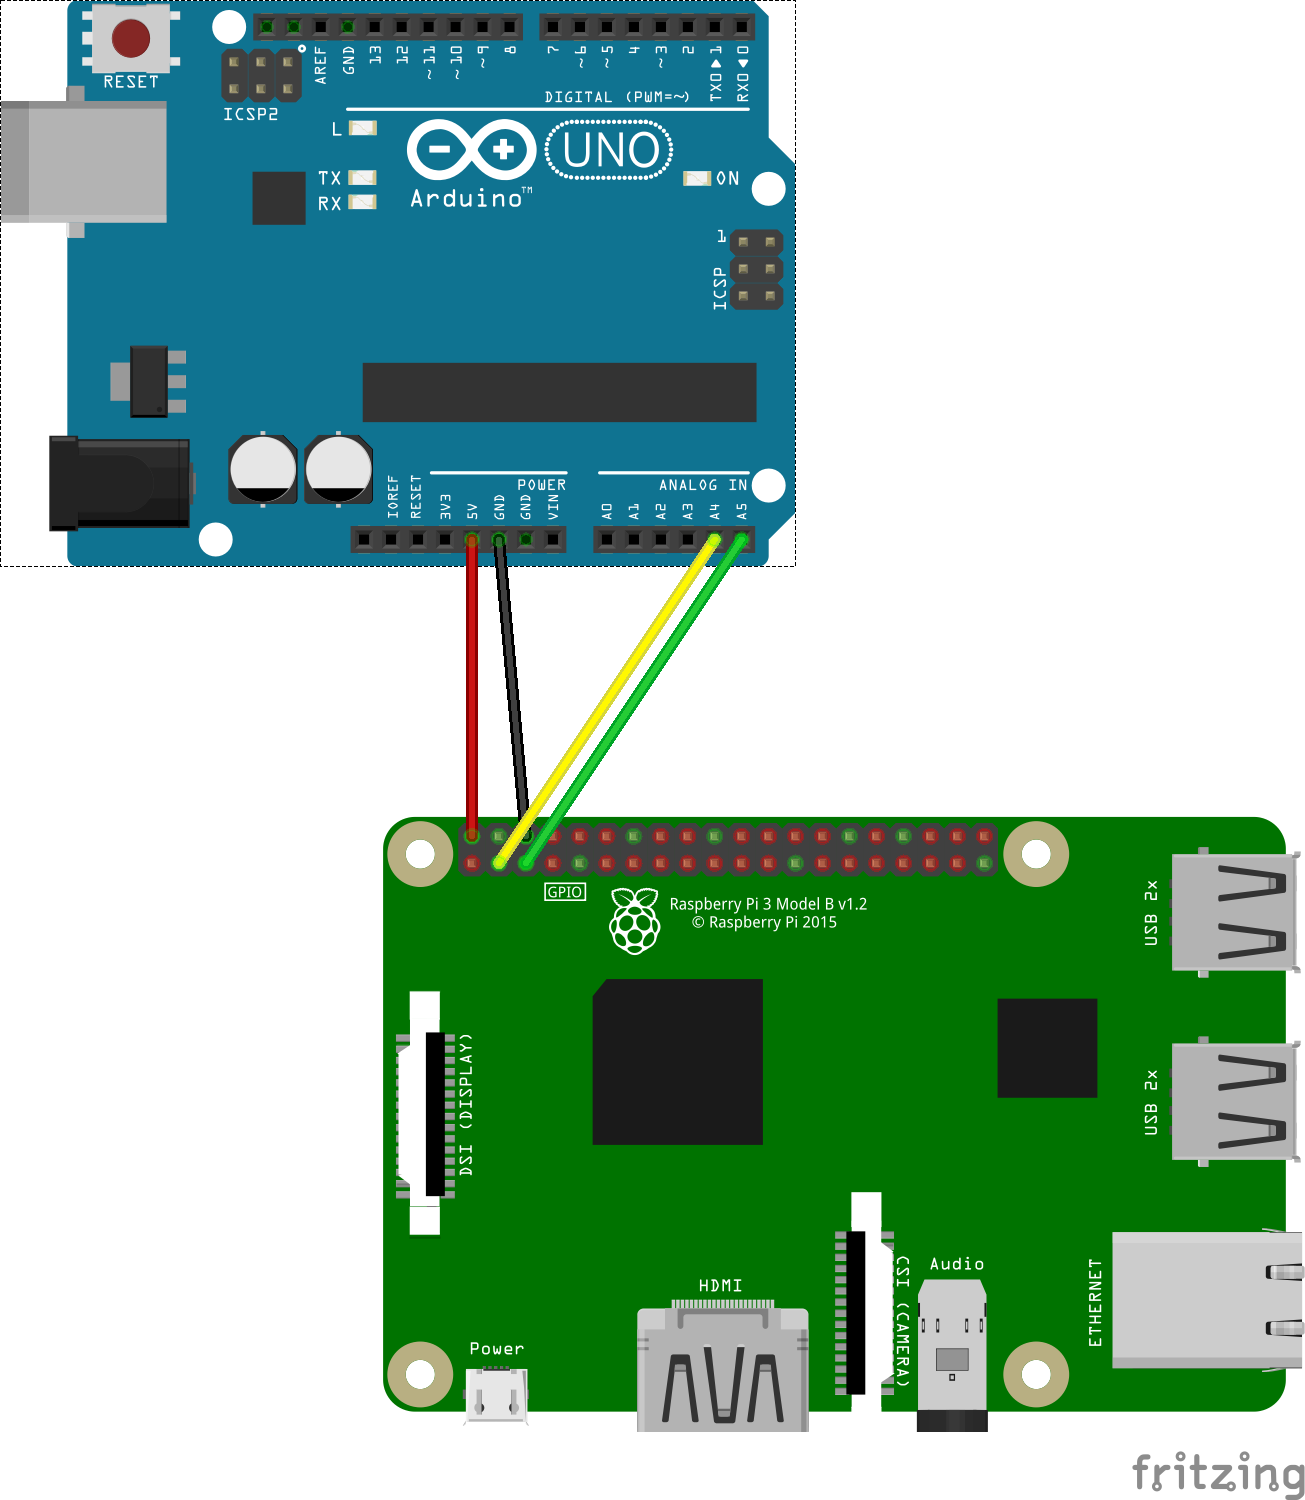 Controlling An Arduino From A Pi3 Using I2c Wiring Diagram Bb Cpsiowgnh0